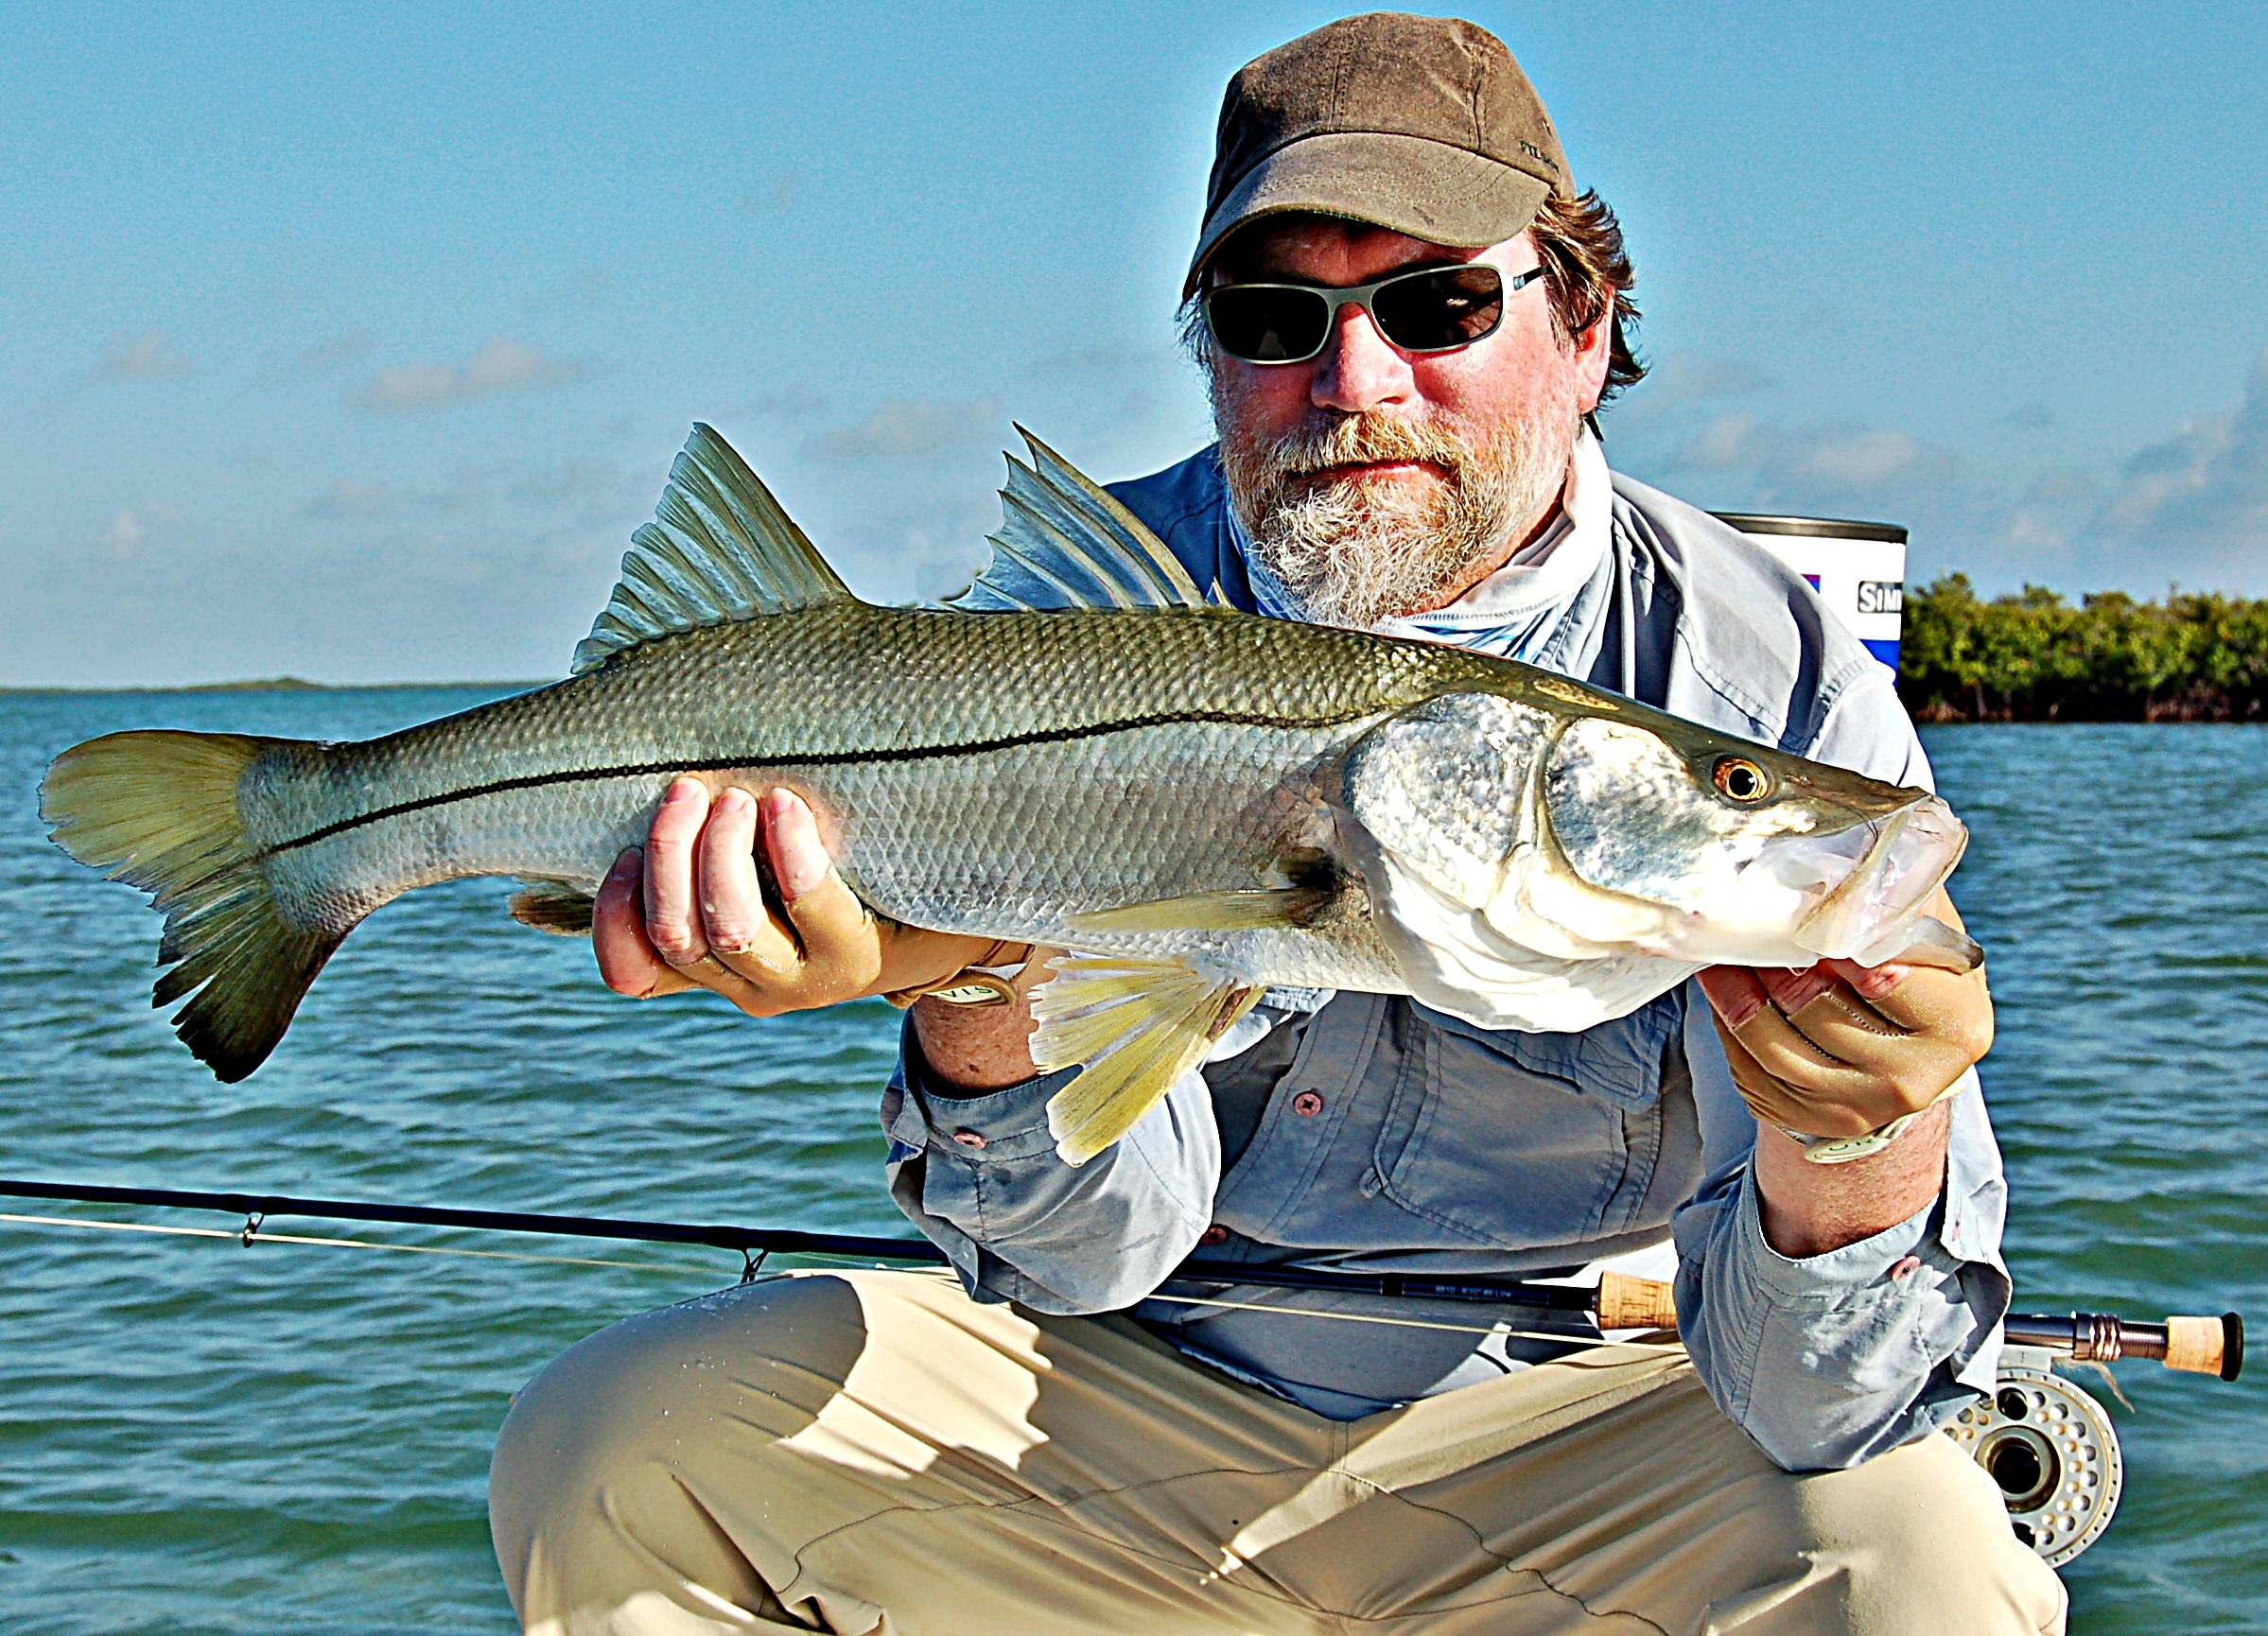 Snook fishing in the florida keys for Fly fishing guides near me